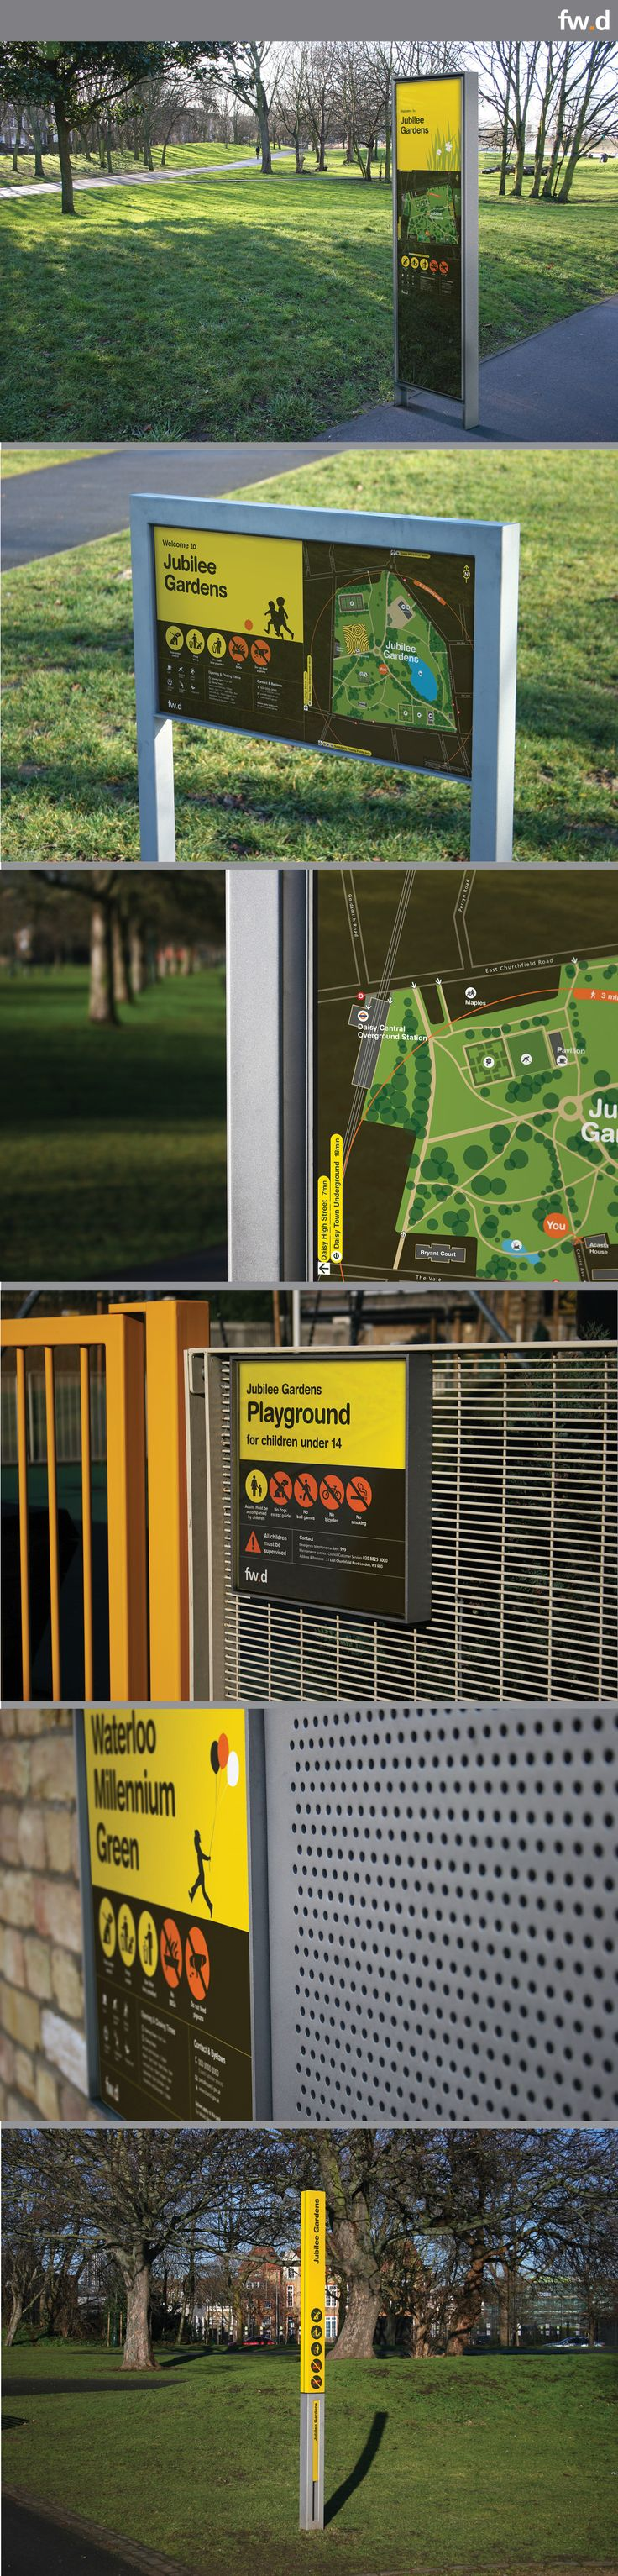 Daisy by fwdesign.  A modular wayfinding sign system for parks.  http://www.fwdsignsolutions.com/